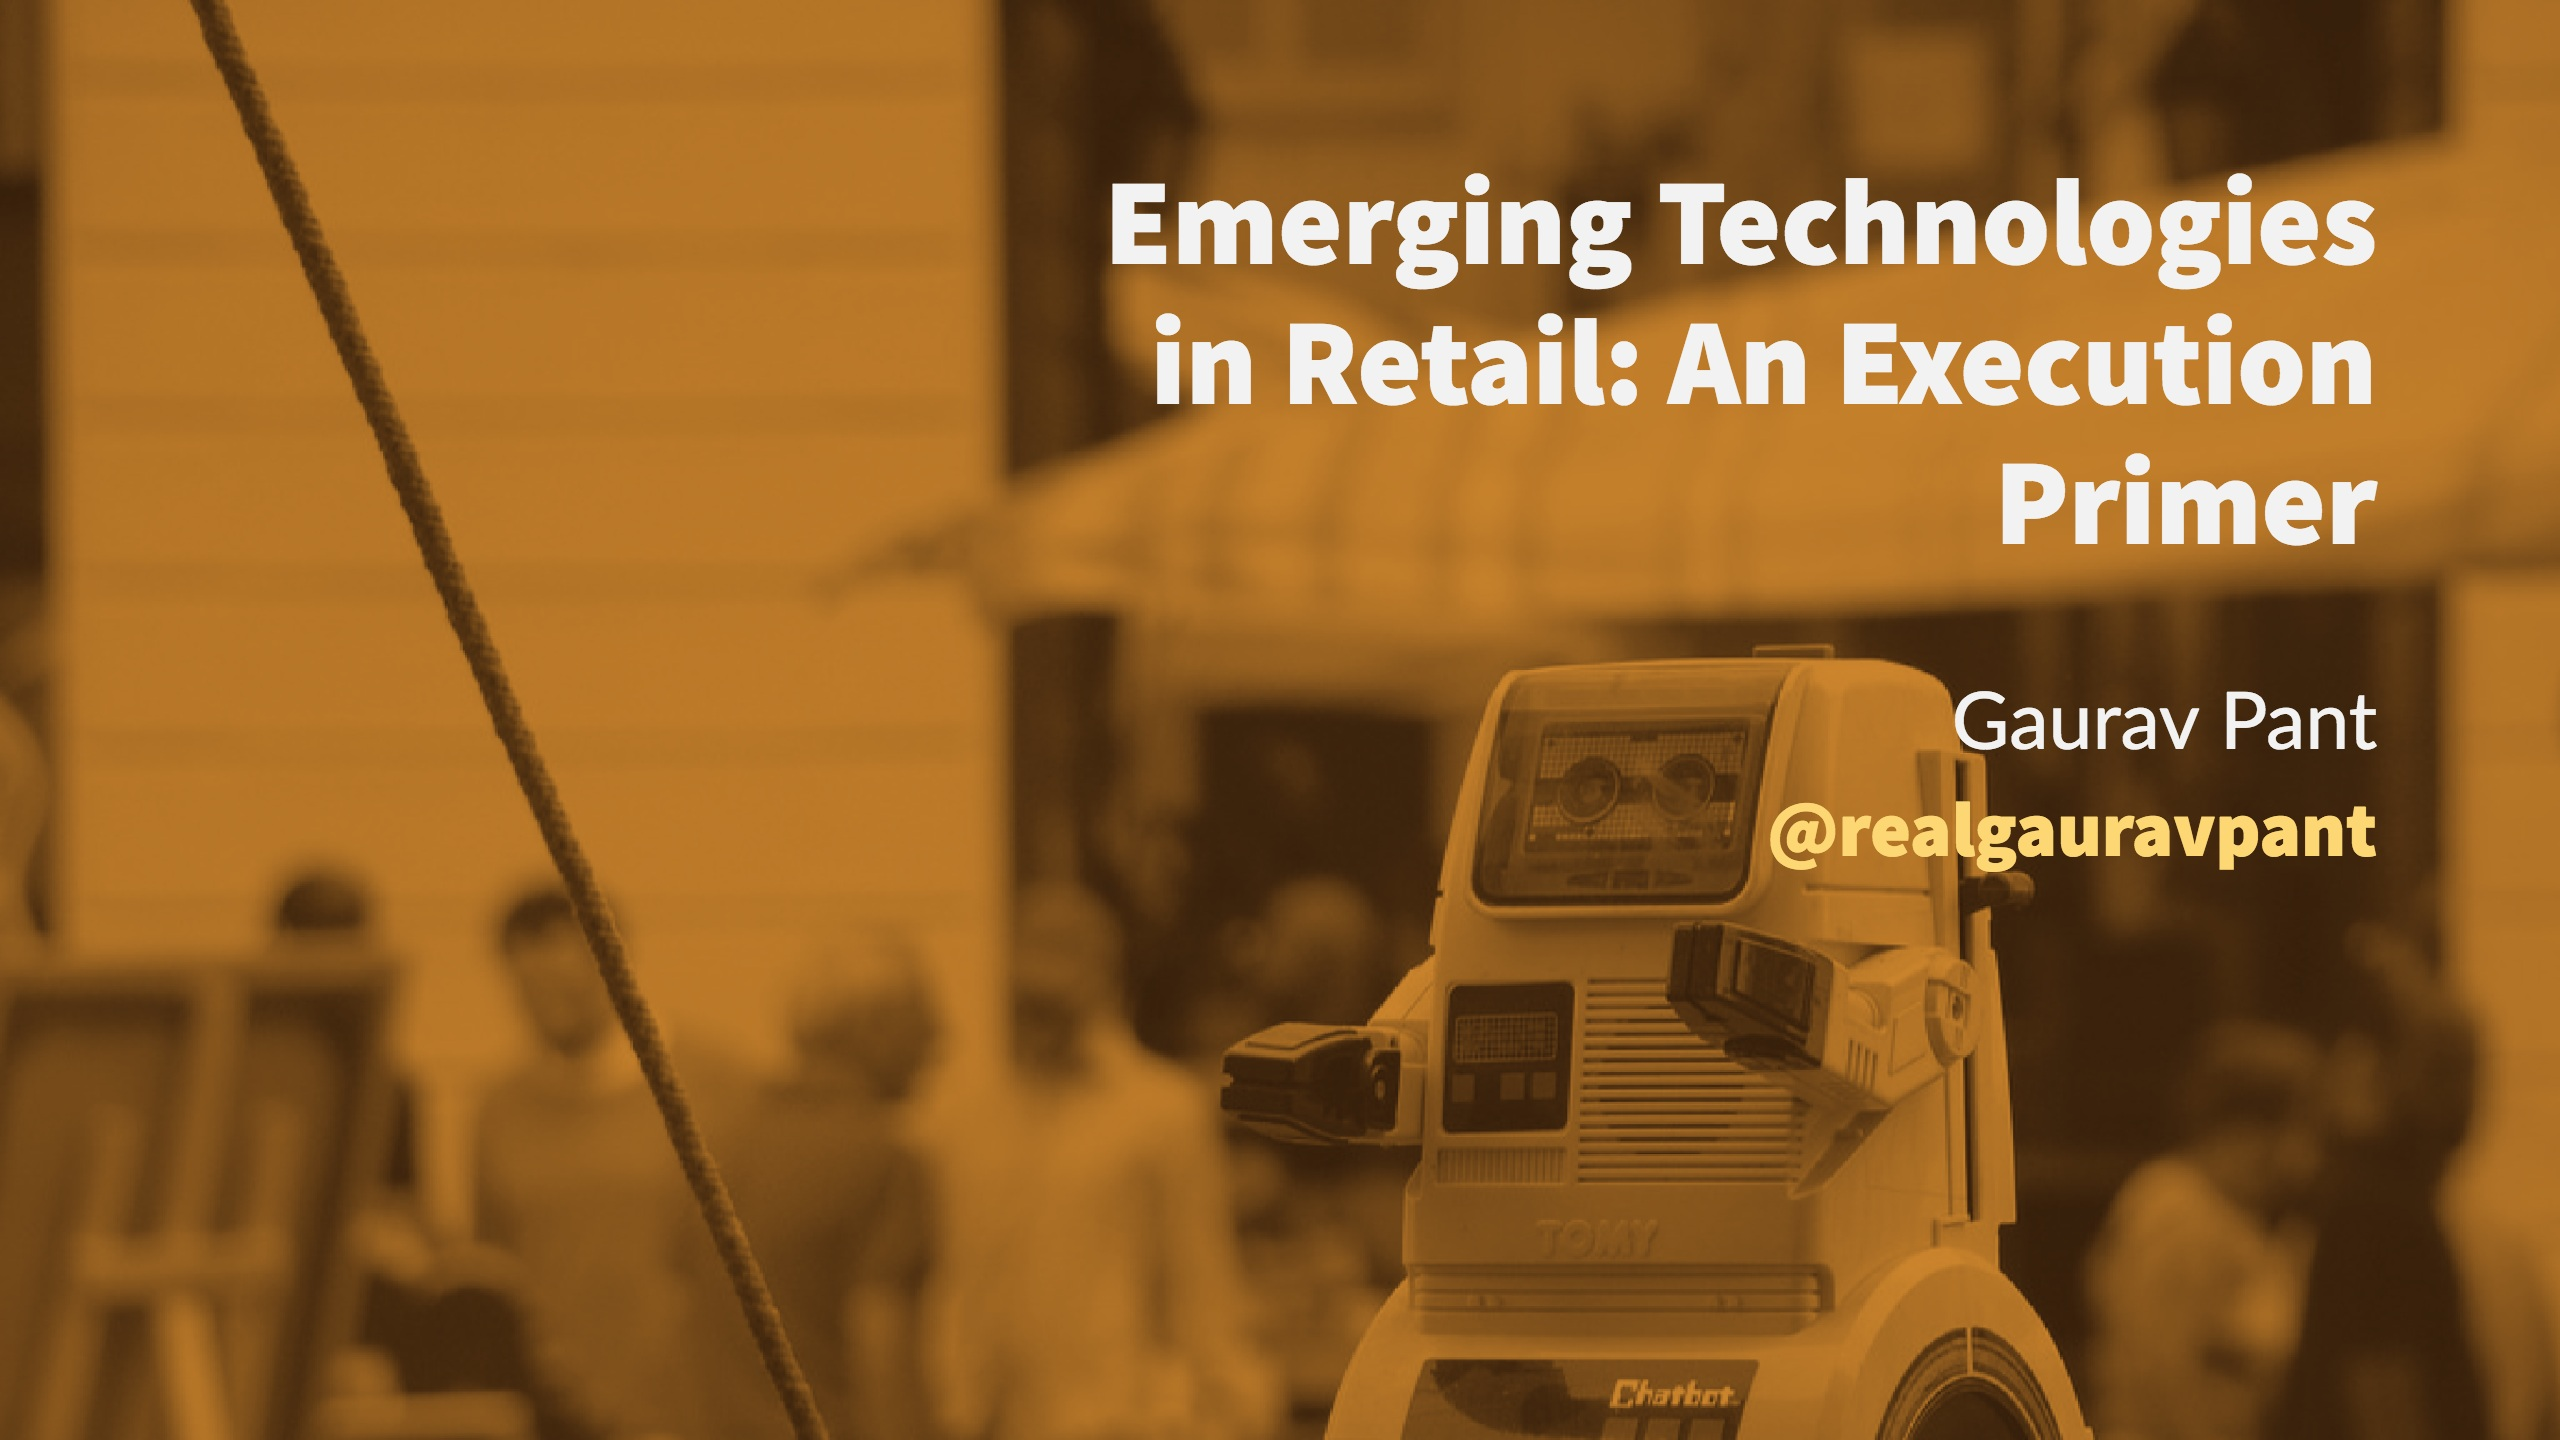 Emerging Technologies In Retail: An Execution Primer